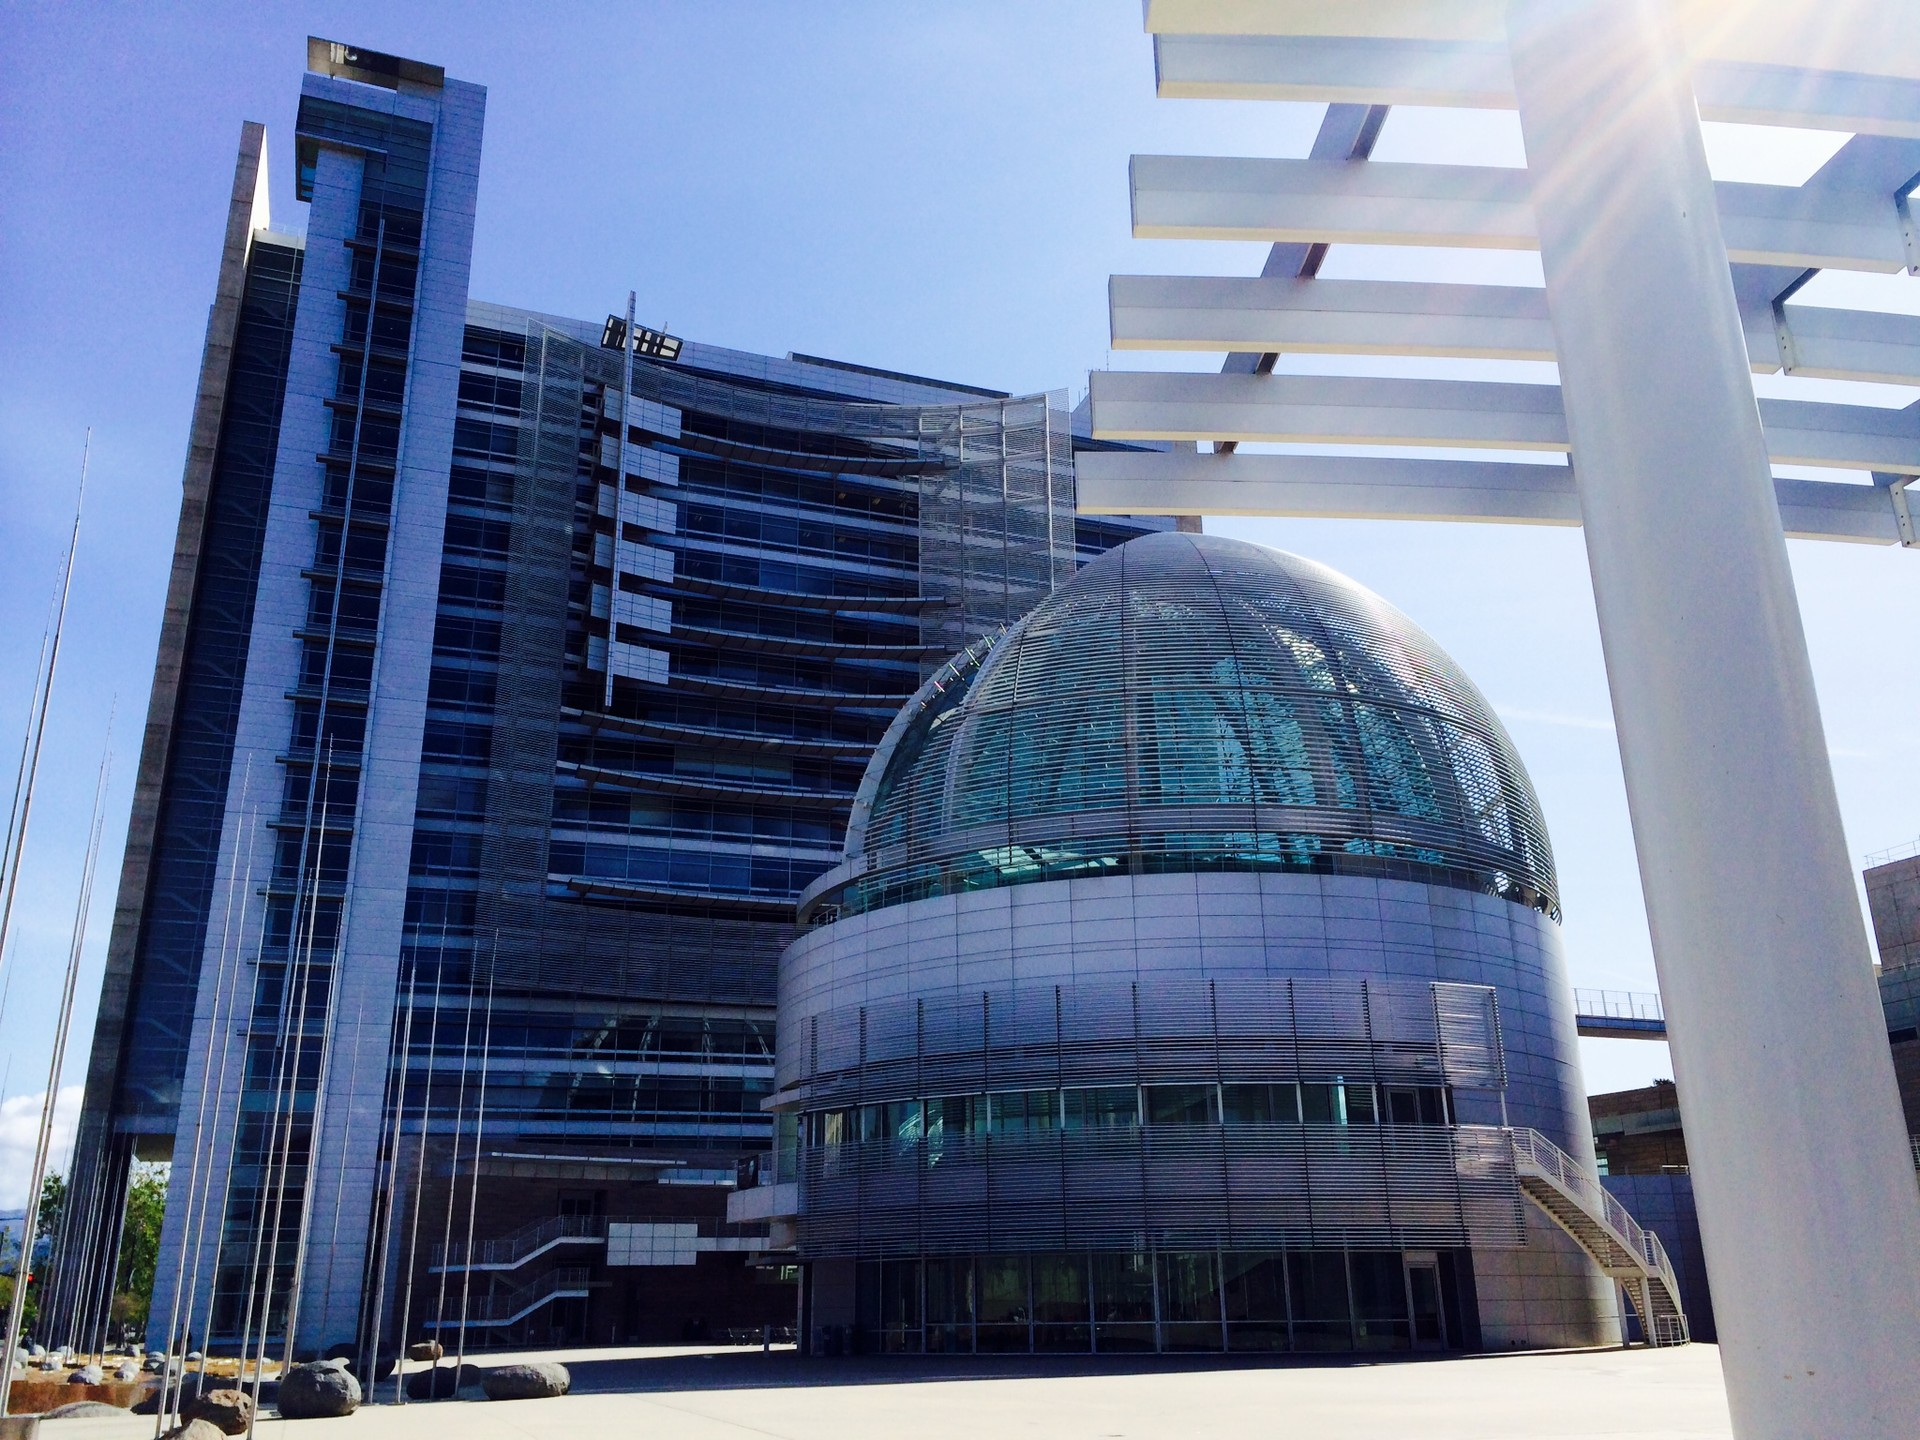 The balance of power may shift at San Jose City Hall with the special election.